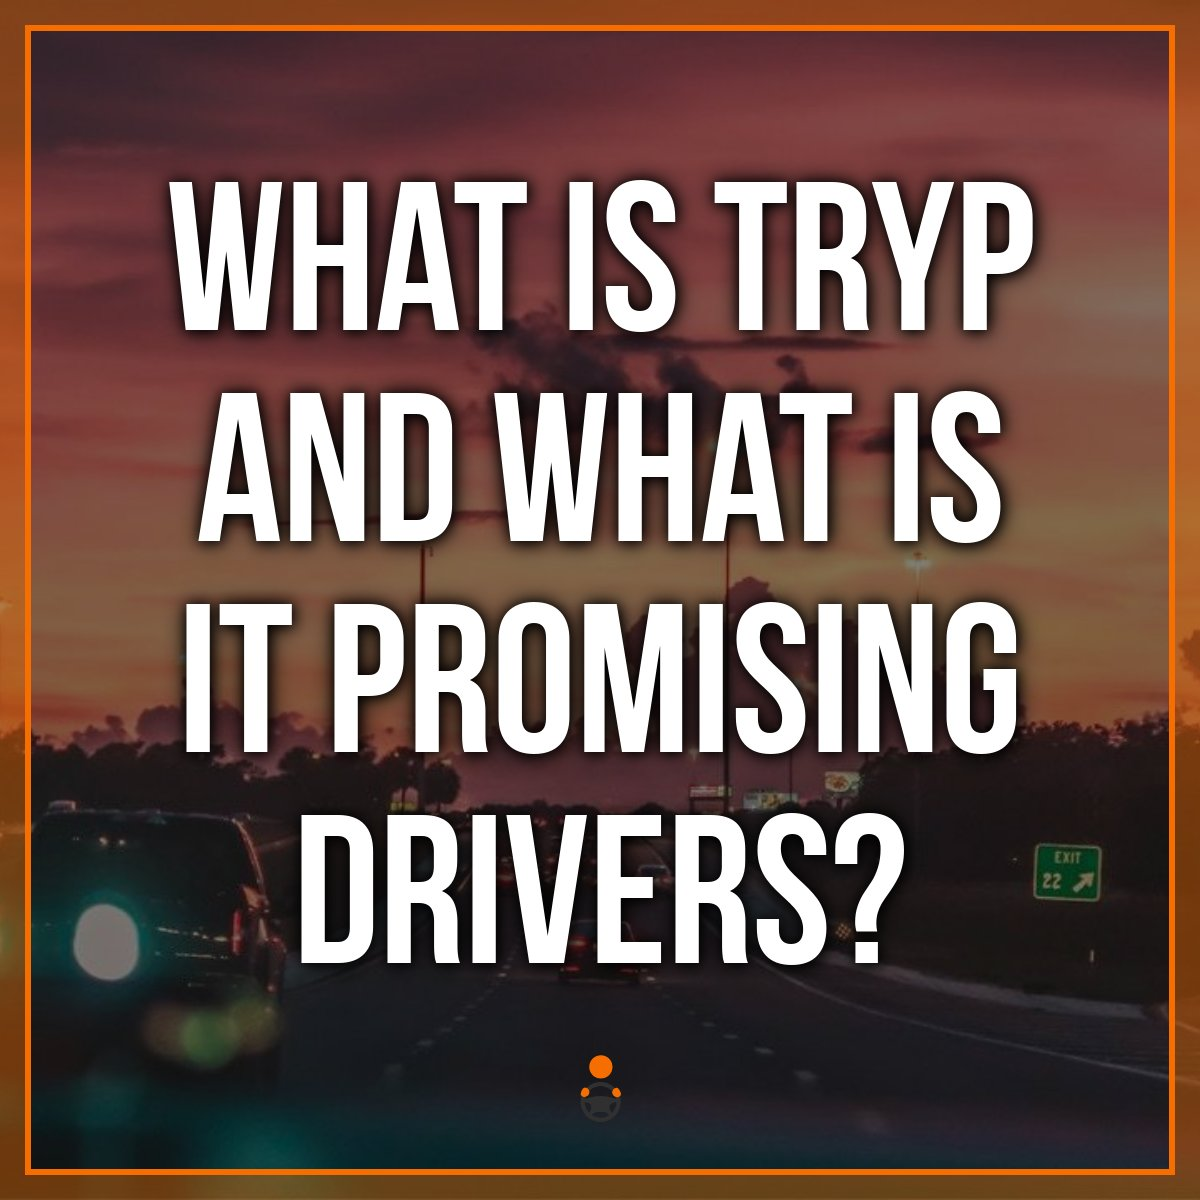 What is Tryp image